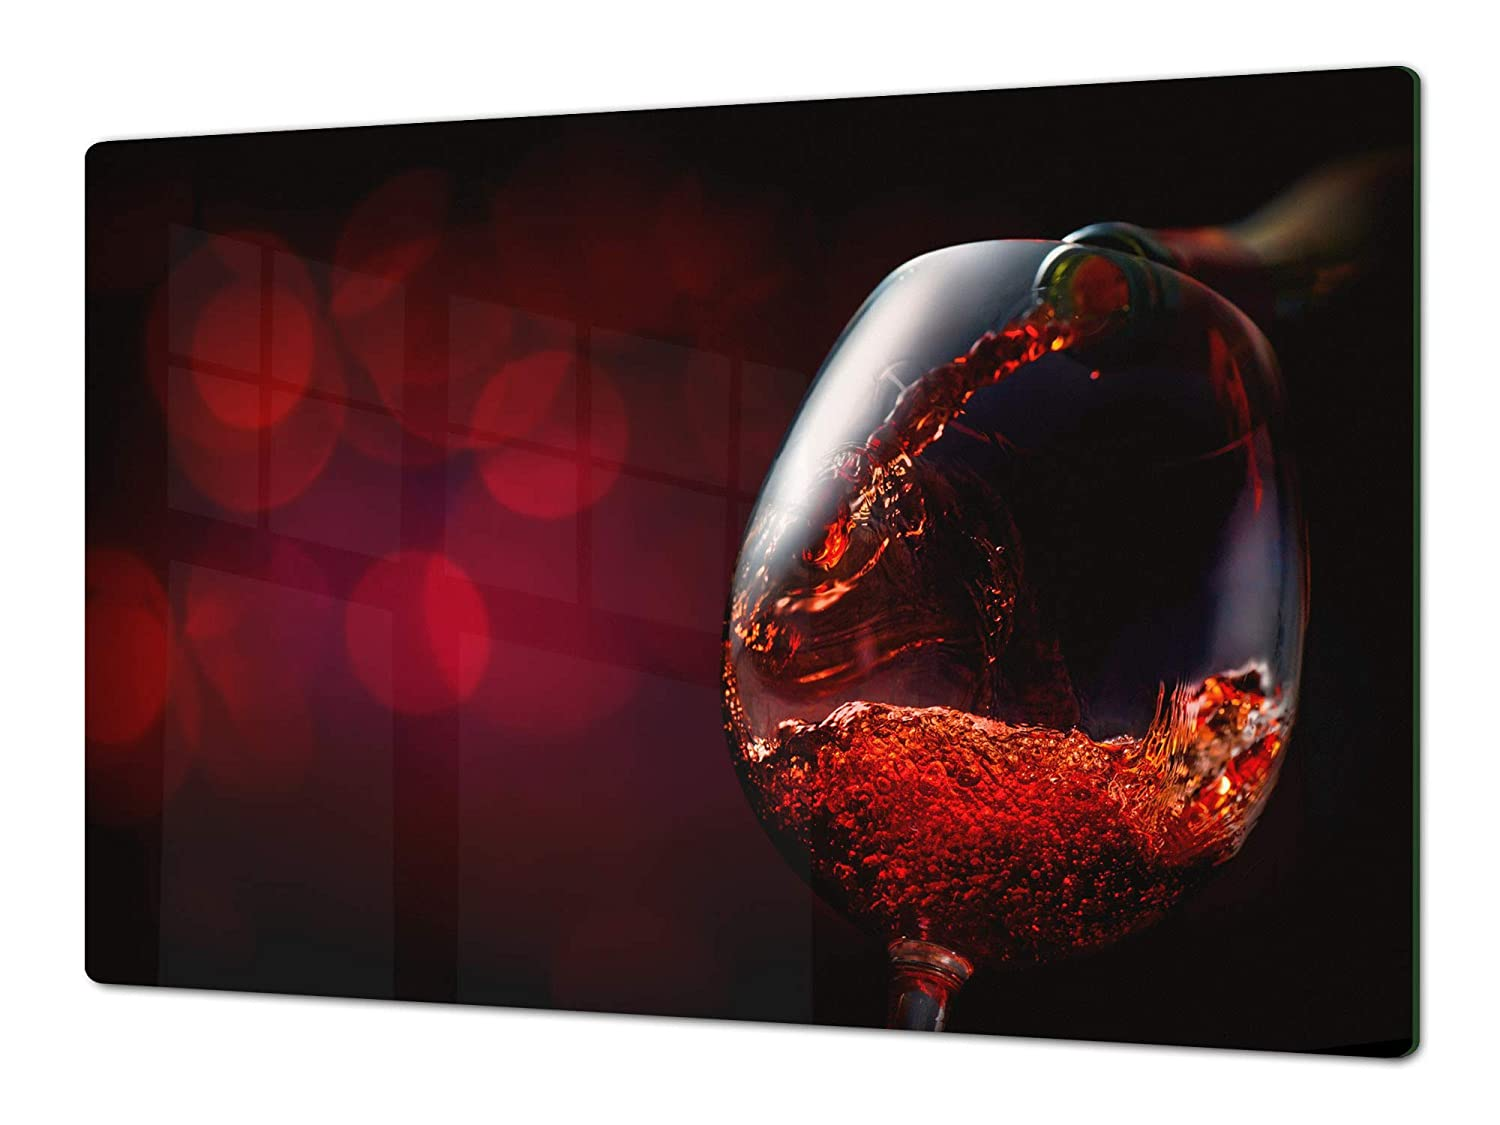 Red wine 7 80x52 Big Kitchen Board & Induction Cooktop Cover – Glass Pastry Board – Heat and Bacteria Resistant;Single  80 x 52 cm (31,5  x 20,47 ); Double  40 x 52 cm (15,75  x 20,47 ); Wine Series DD04